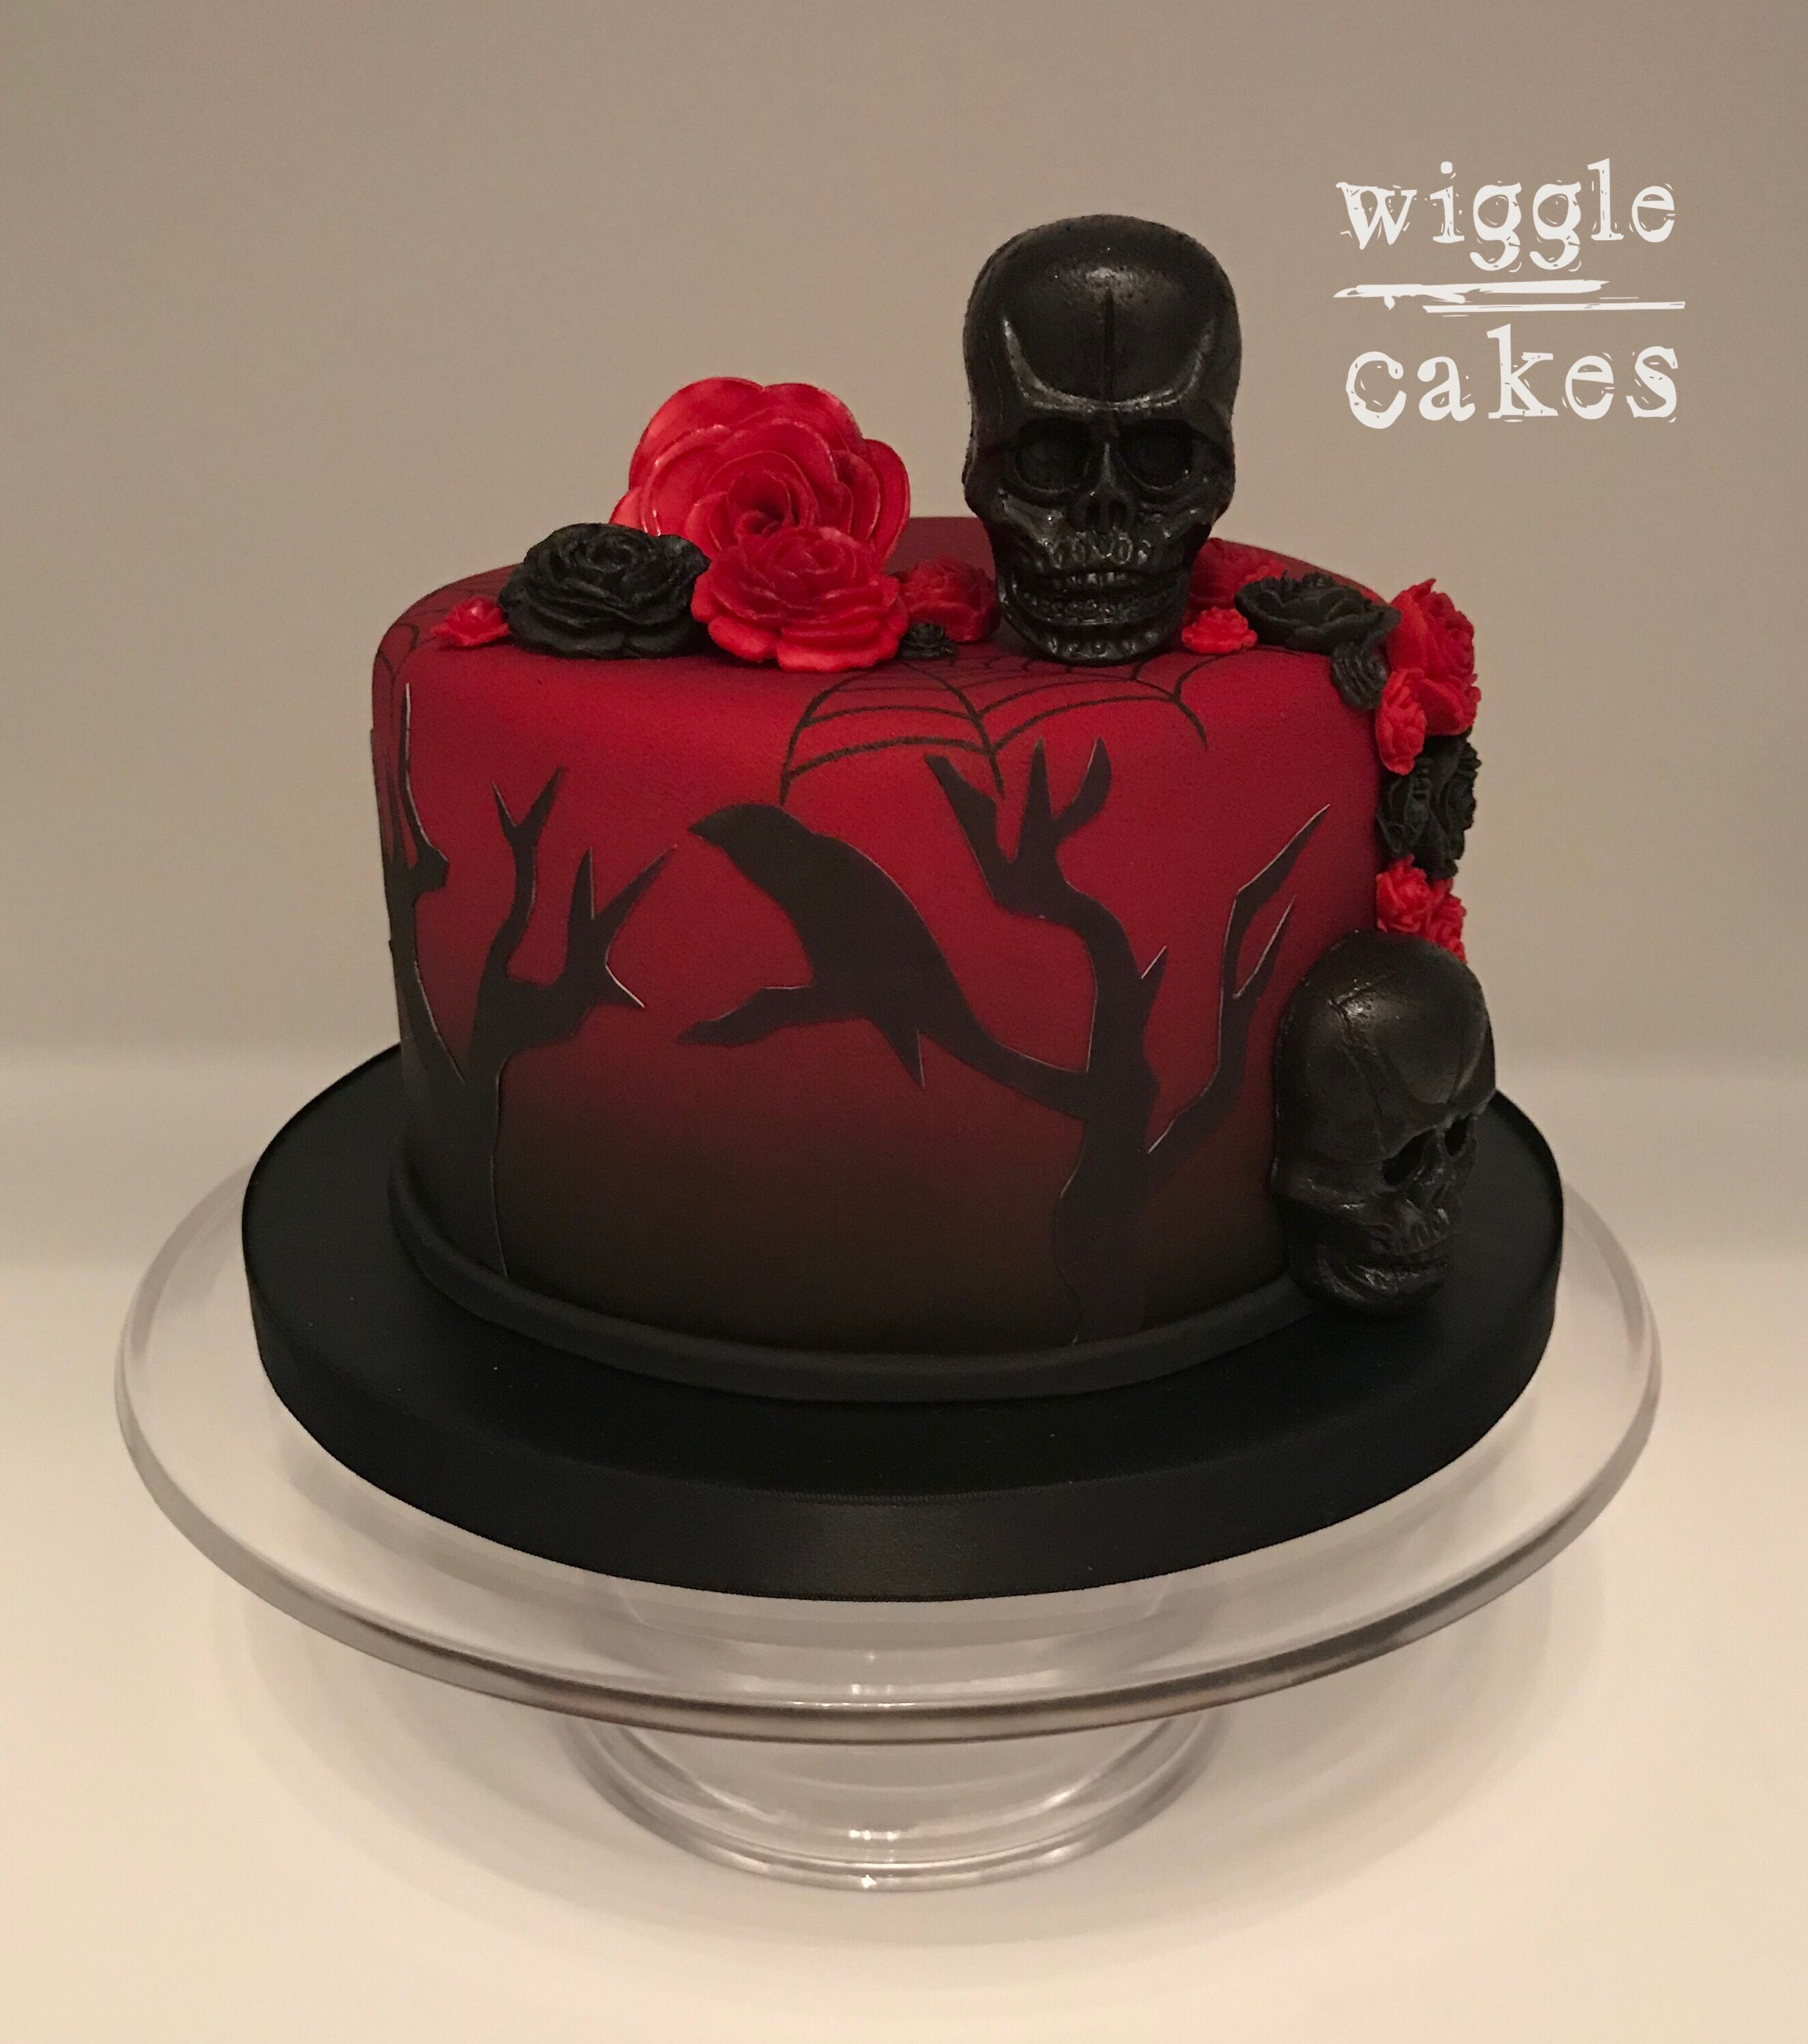 Incredible Red And Black Gothic Cake With Ravens Skulls And Roses Gothic Funny Birthday Cards Online Inifofree Goldxyz